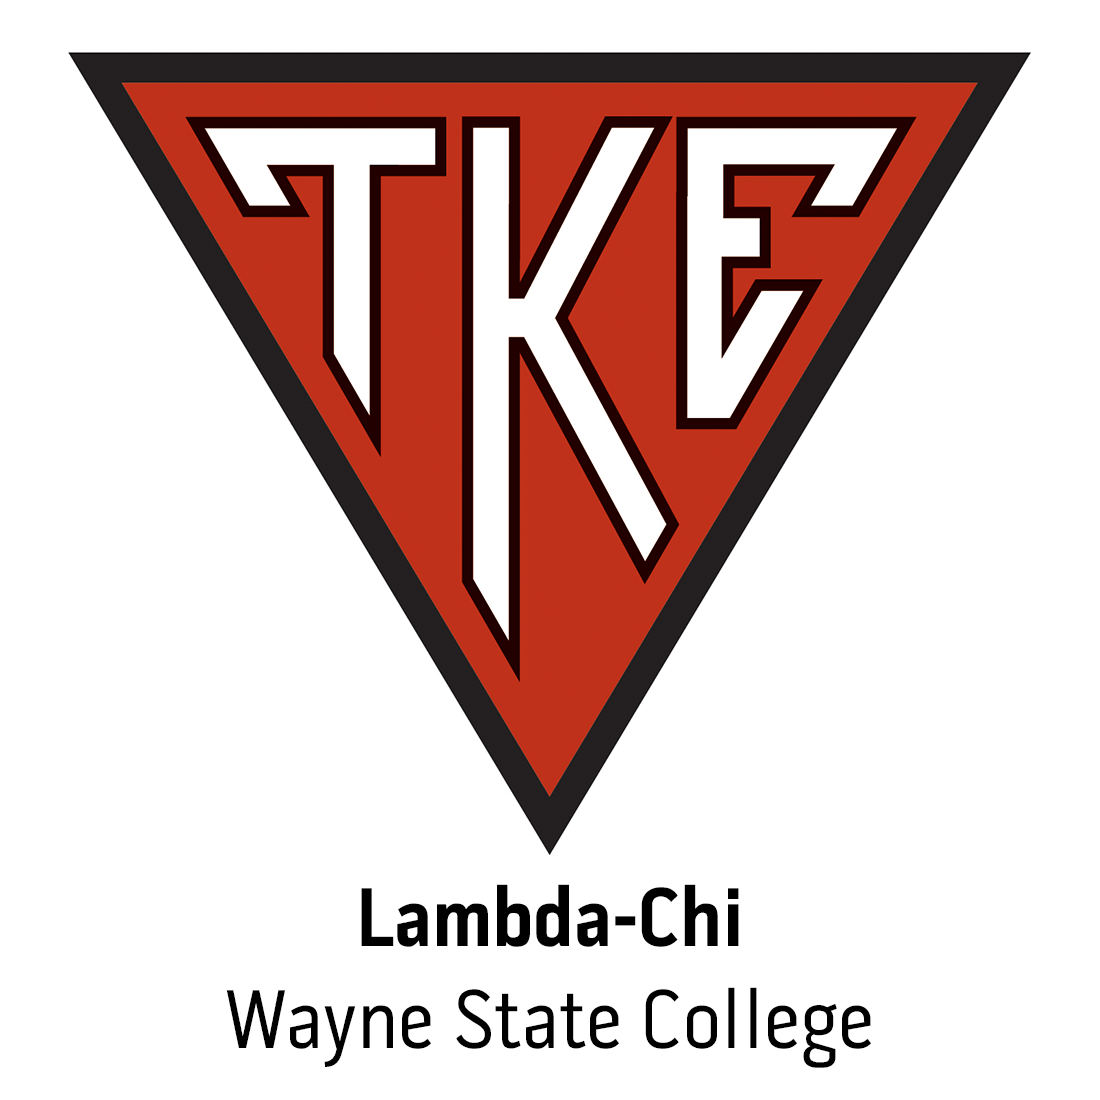 Lambda-Chi Chapter at Wayne State College